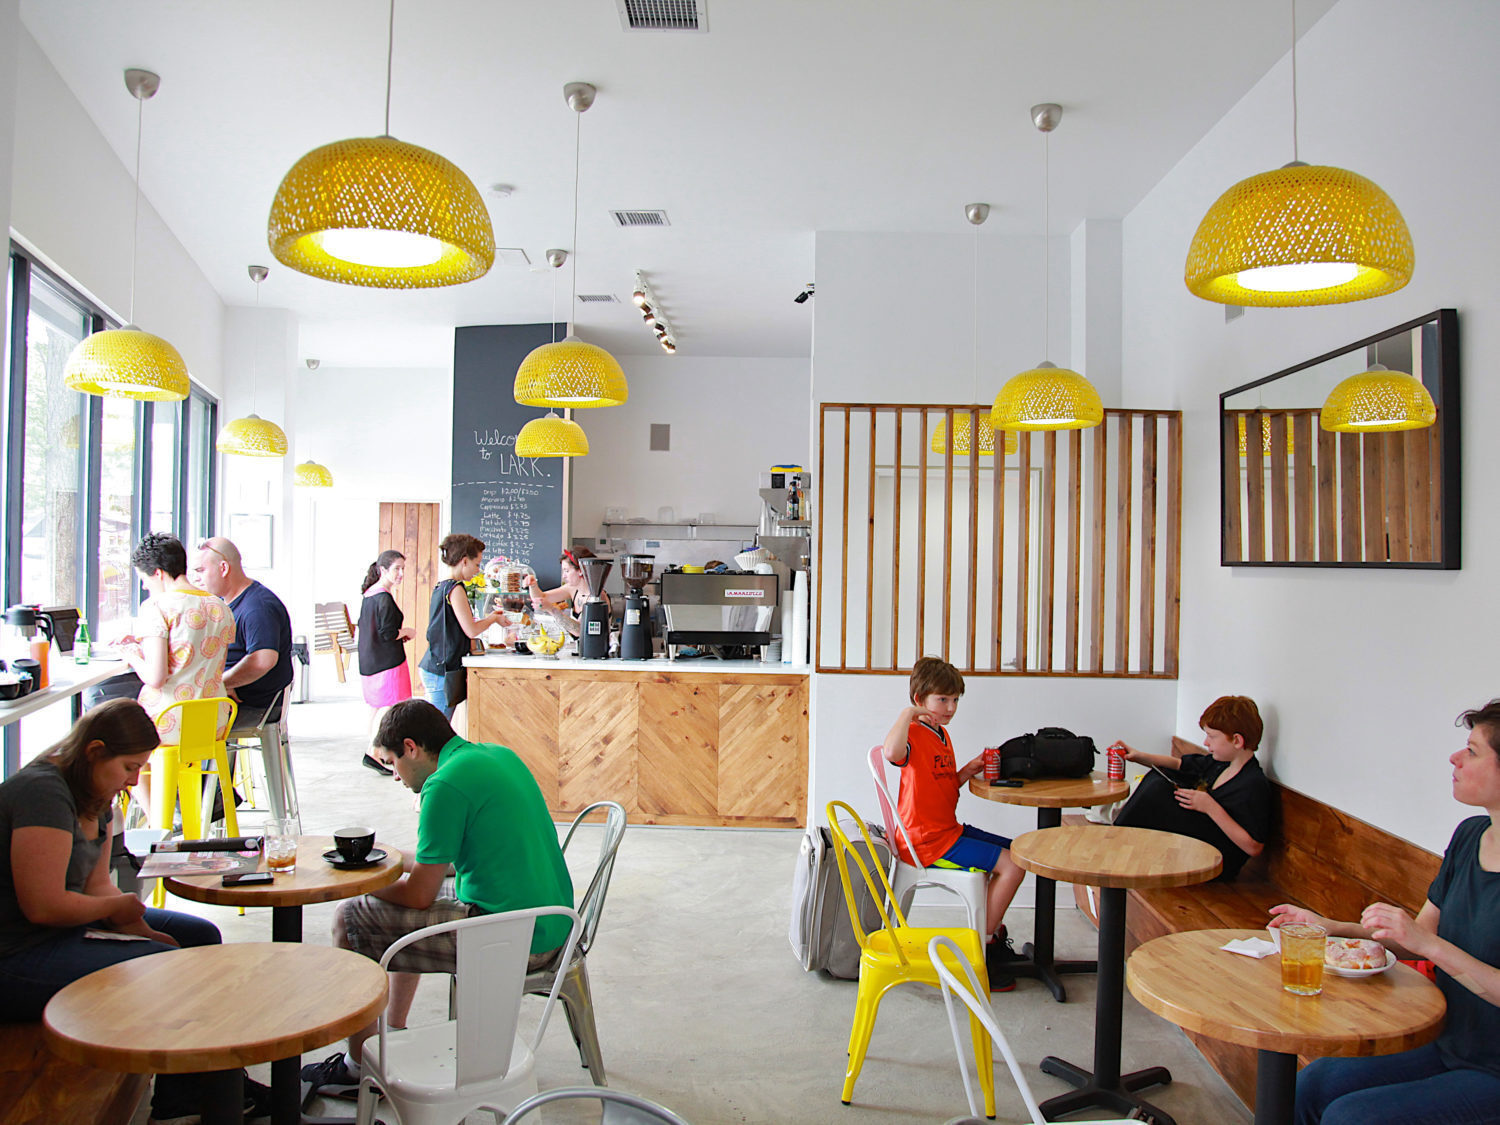 The first thing you see upon entering Lark is a field bright of bright yellow lights that create a dominant plane throughout the space. This main design element helped achieve one of the clients esthetic goals to incorporate pops of color that would be inviting to children and their parents promoting the idea behind the family friendly coffee house.